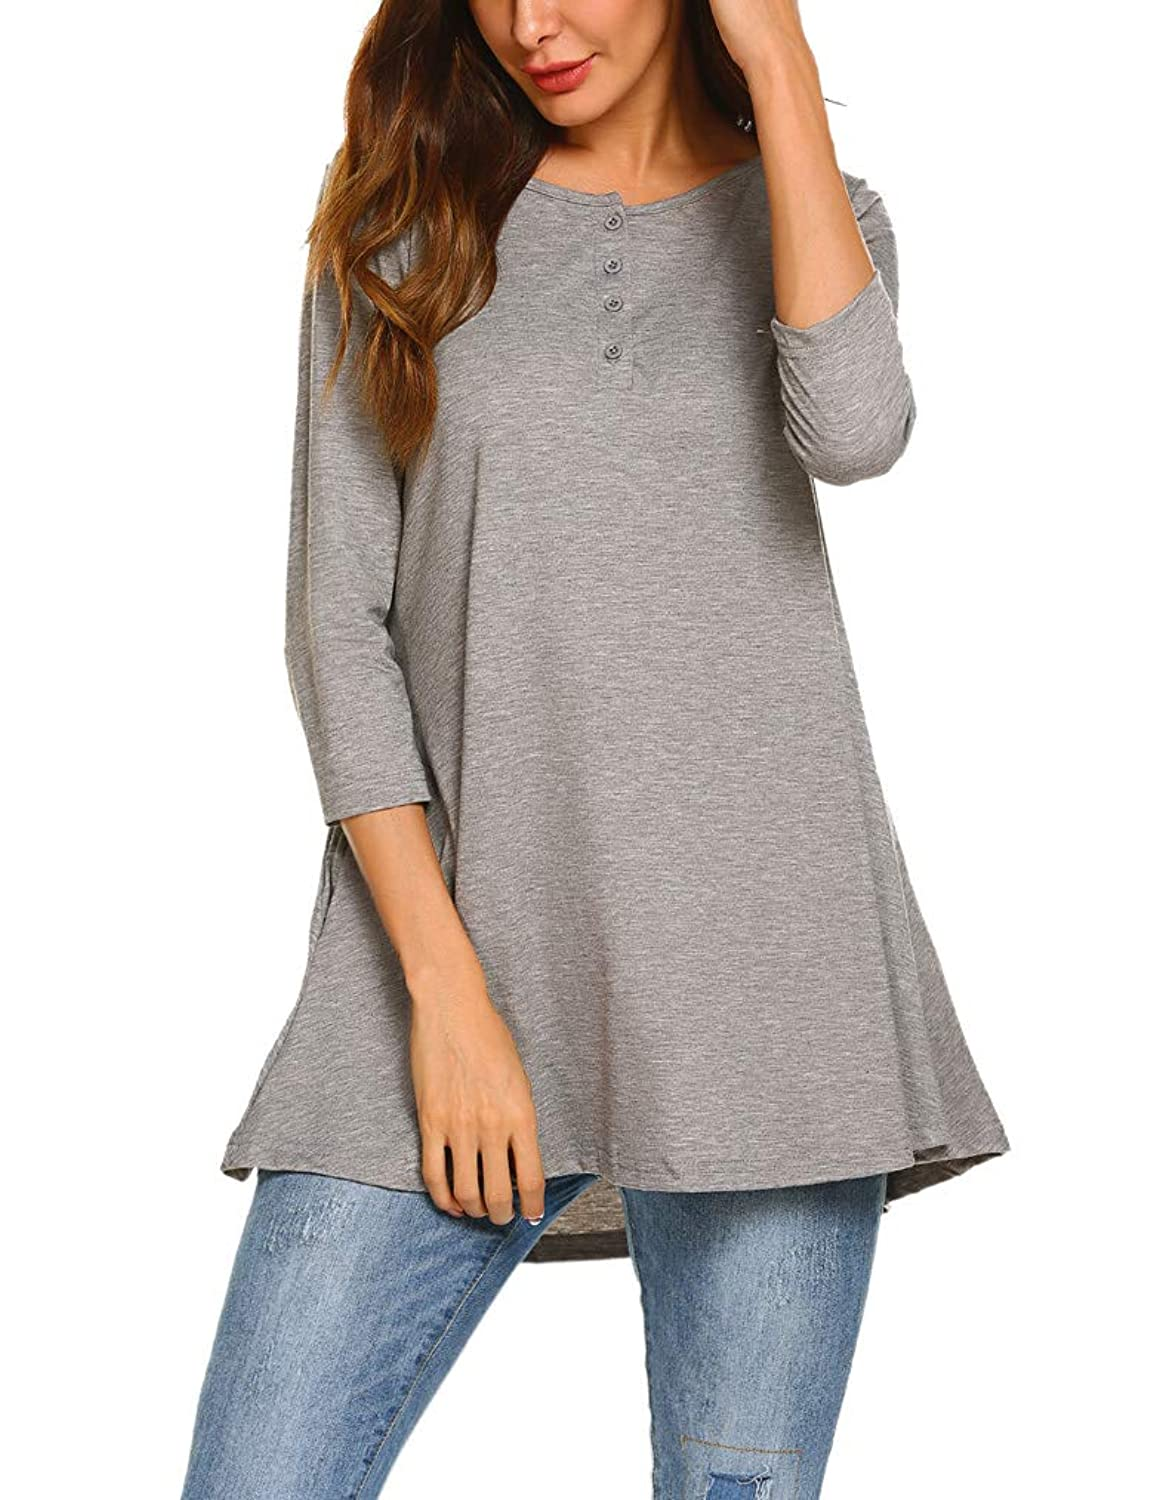 8b265e74731 Its soft and breathable, comfy to wear. Casual Tunic Shirts With Pockets: 3/4  Sleeve Scoop Neck Long Tunic Shirts Loose Tunic Tops Henley Shirts for Women,  ...